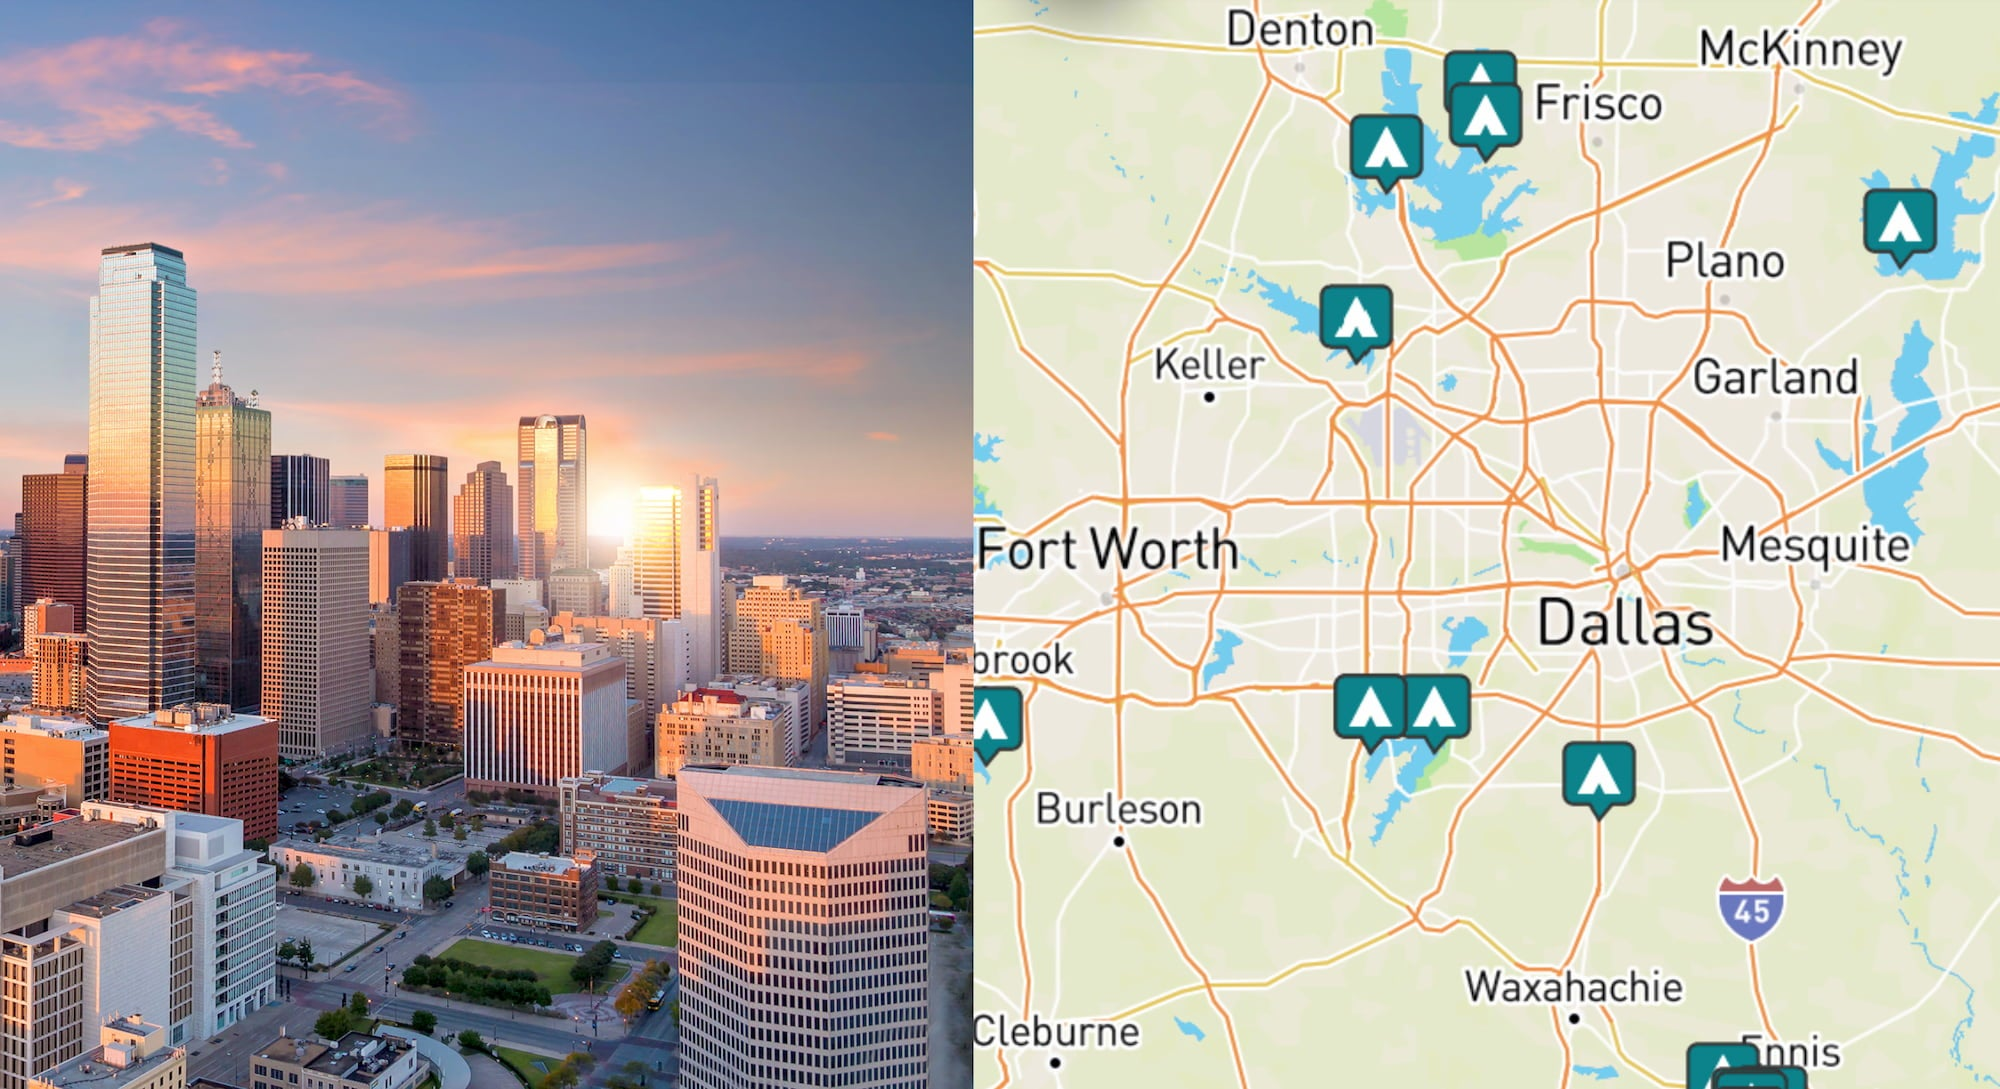 side by side images of downtown Dallas and a map of campgrounds around Dallas